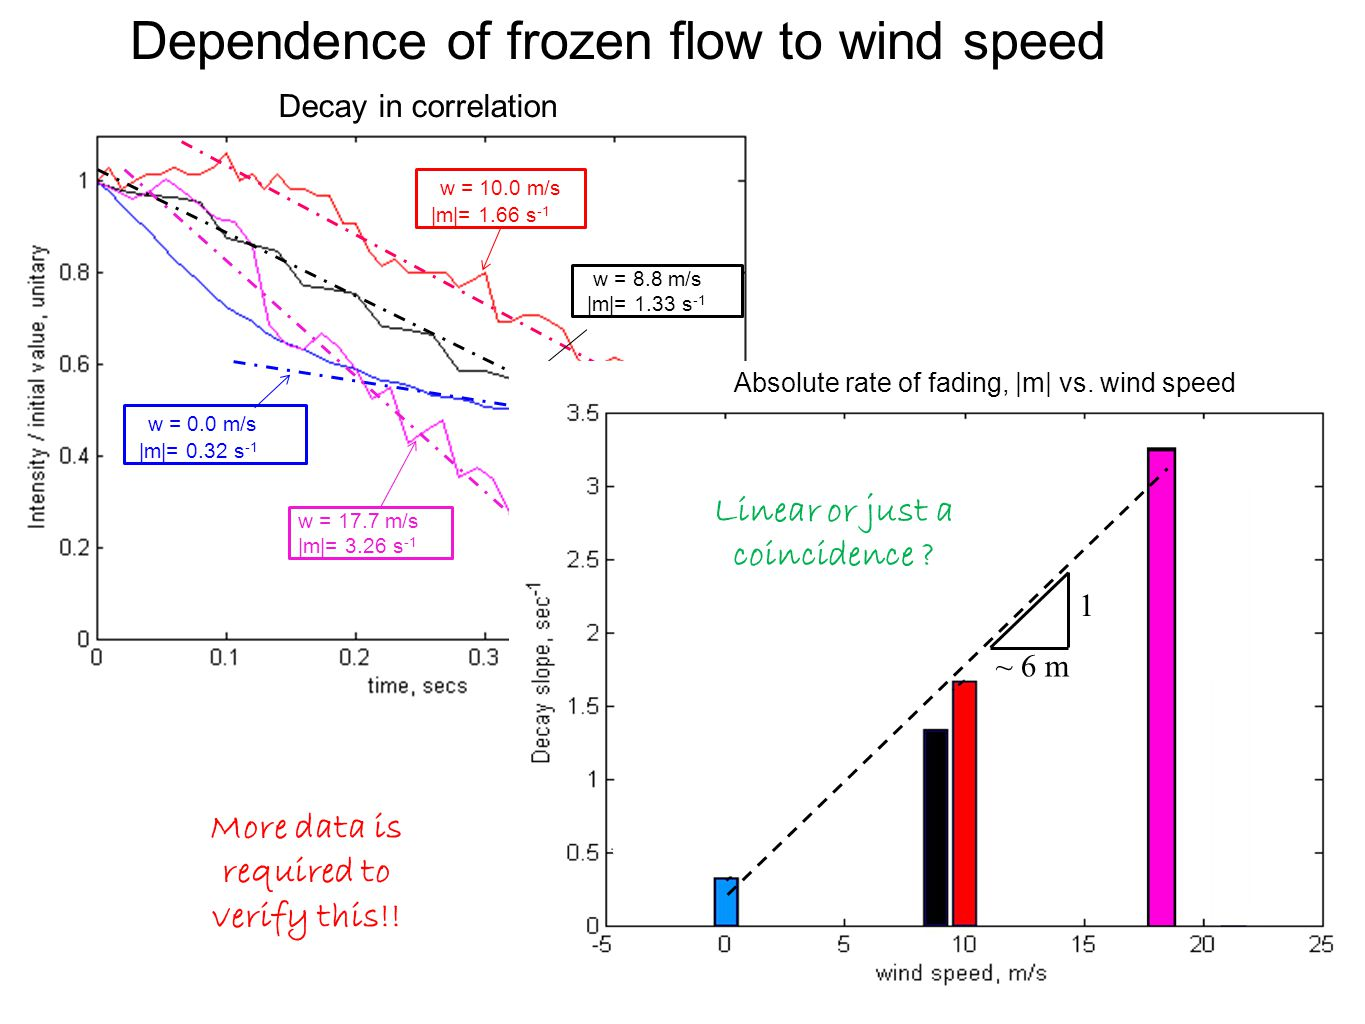 Dependence of frozen flow to wind speed w = 10.0 m/s |m|= 1.66 s -1 w = 17.7 m/s |m|= 3.26 s -1 w = 0.0 m/s |m|= 0.32 s -1 w = 8.8 m/s |m|= 1.33 s -1 More data is required to verify this!.